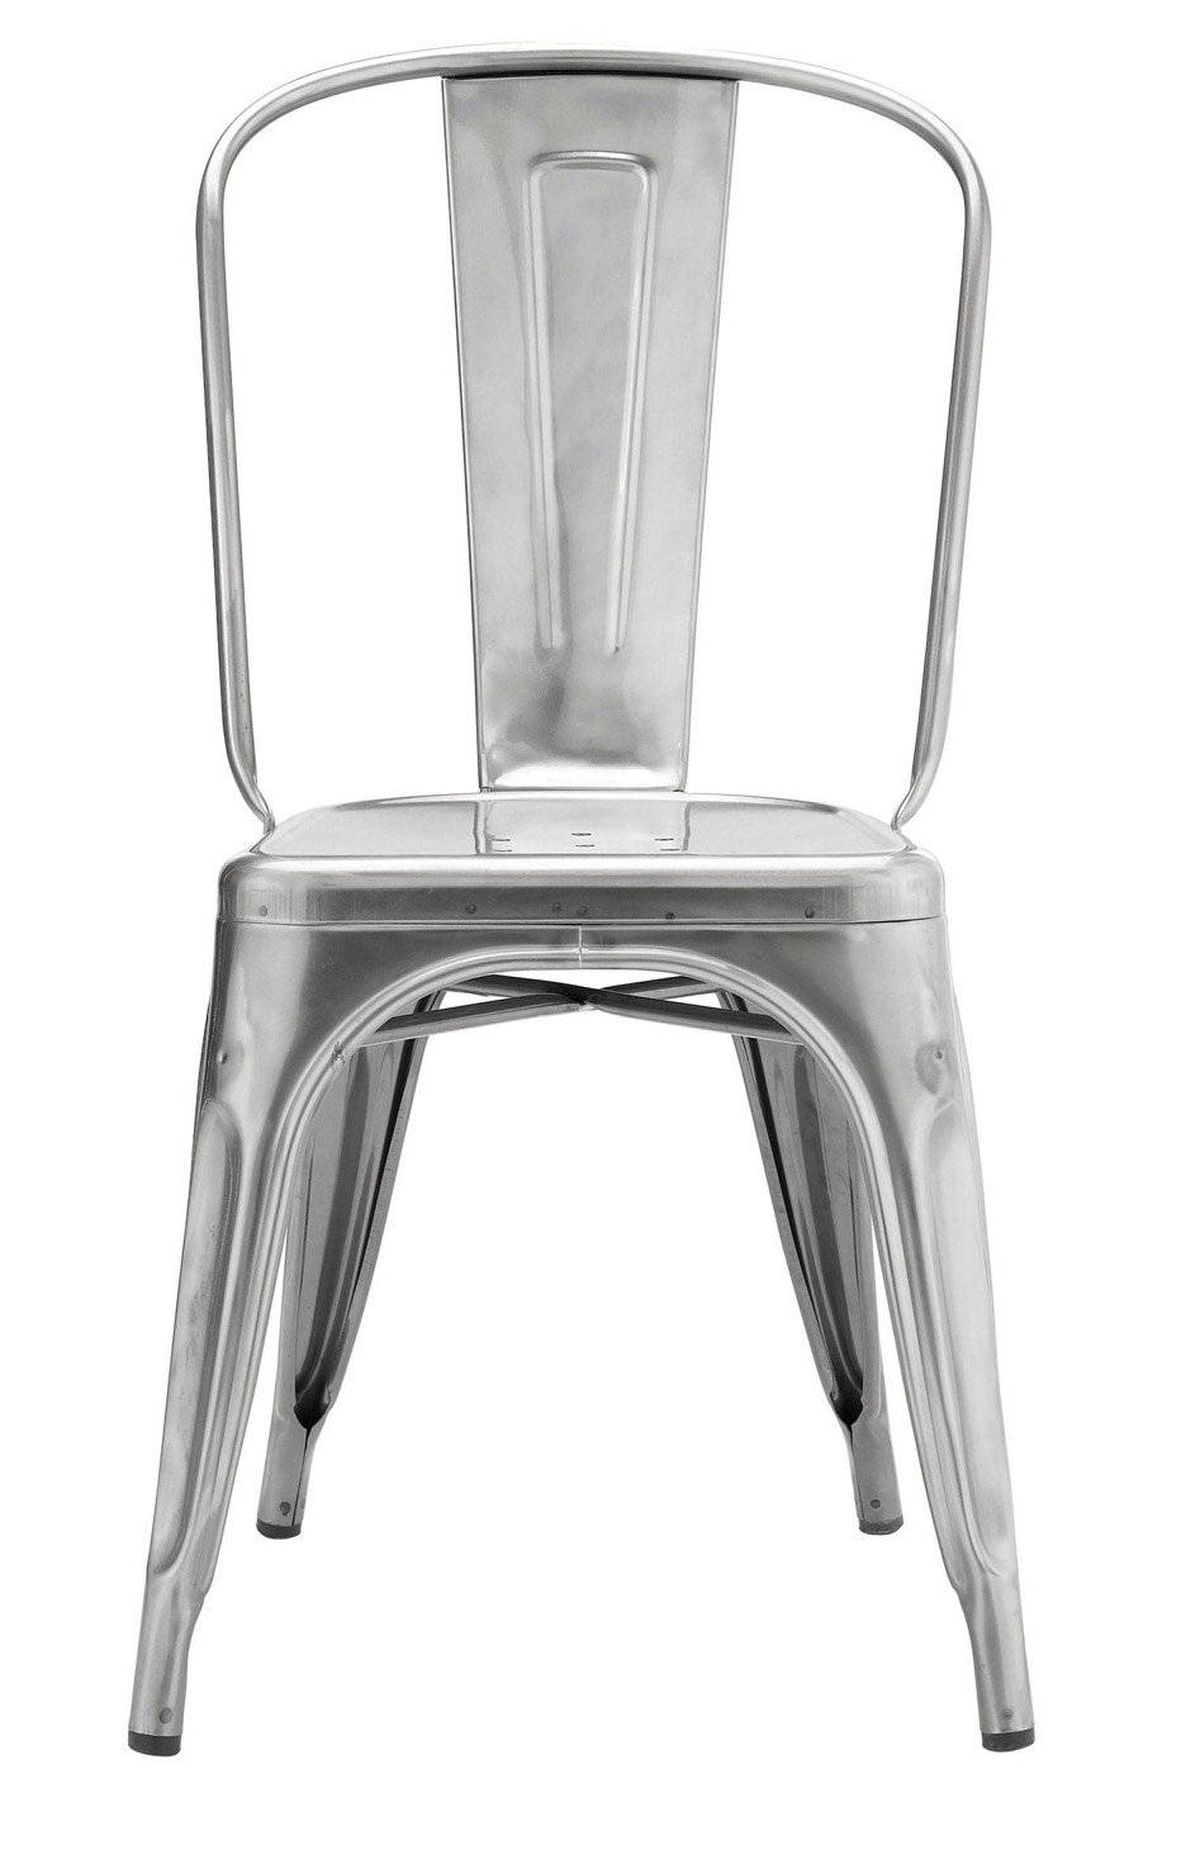 Designed by Xavier Pauchard for Tolix, the classic Marais A Chair famously graced the decks of the S.S. Normandie ocean liner. $250 through www.dwr.com.